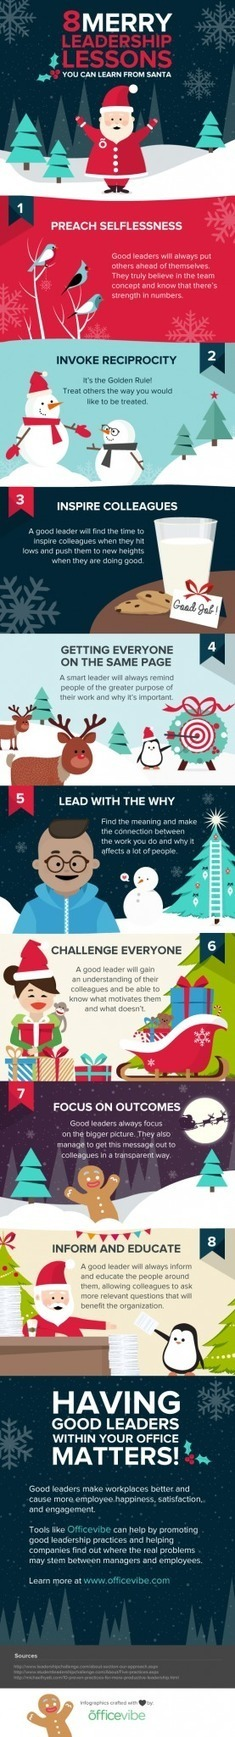 8 Merry Leadership Lessons Taught by Santa Infographic | school improvement process | Scoop.it